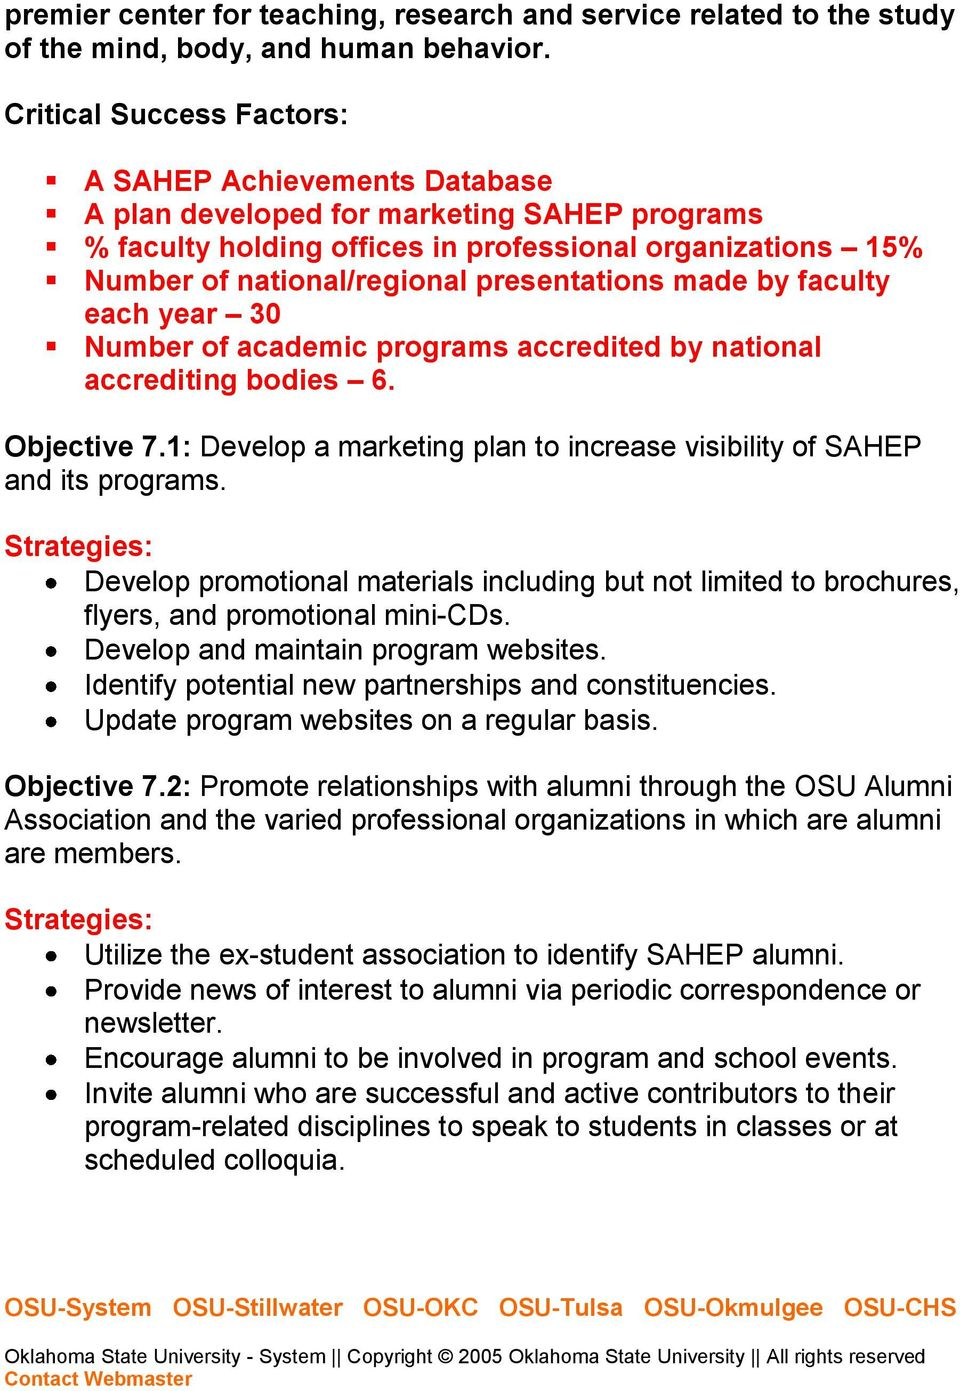 year 30 Number of academic programs accredited by national accrediting bodies 6. Objective 7.1: Develop a marketing plan to increase visibility of SAHEP and its programs.